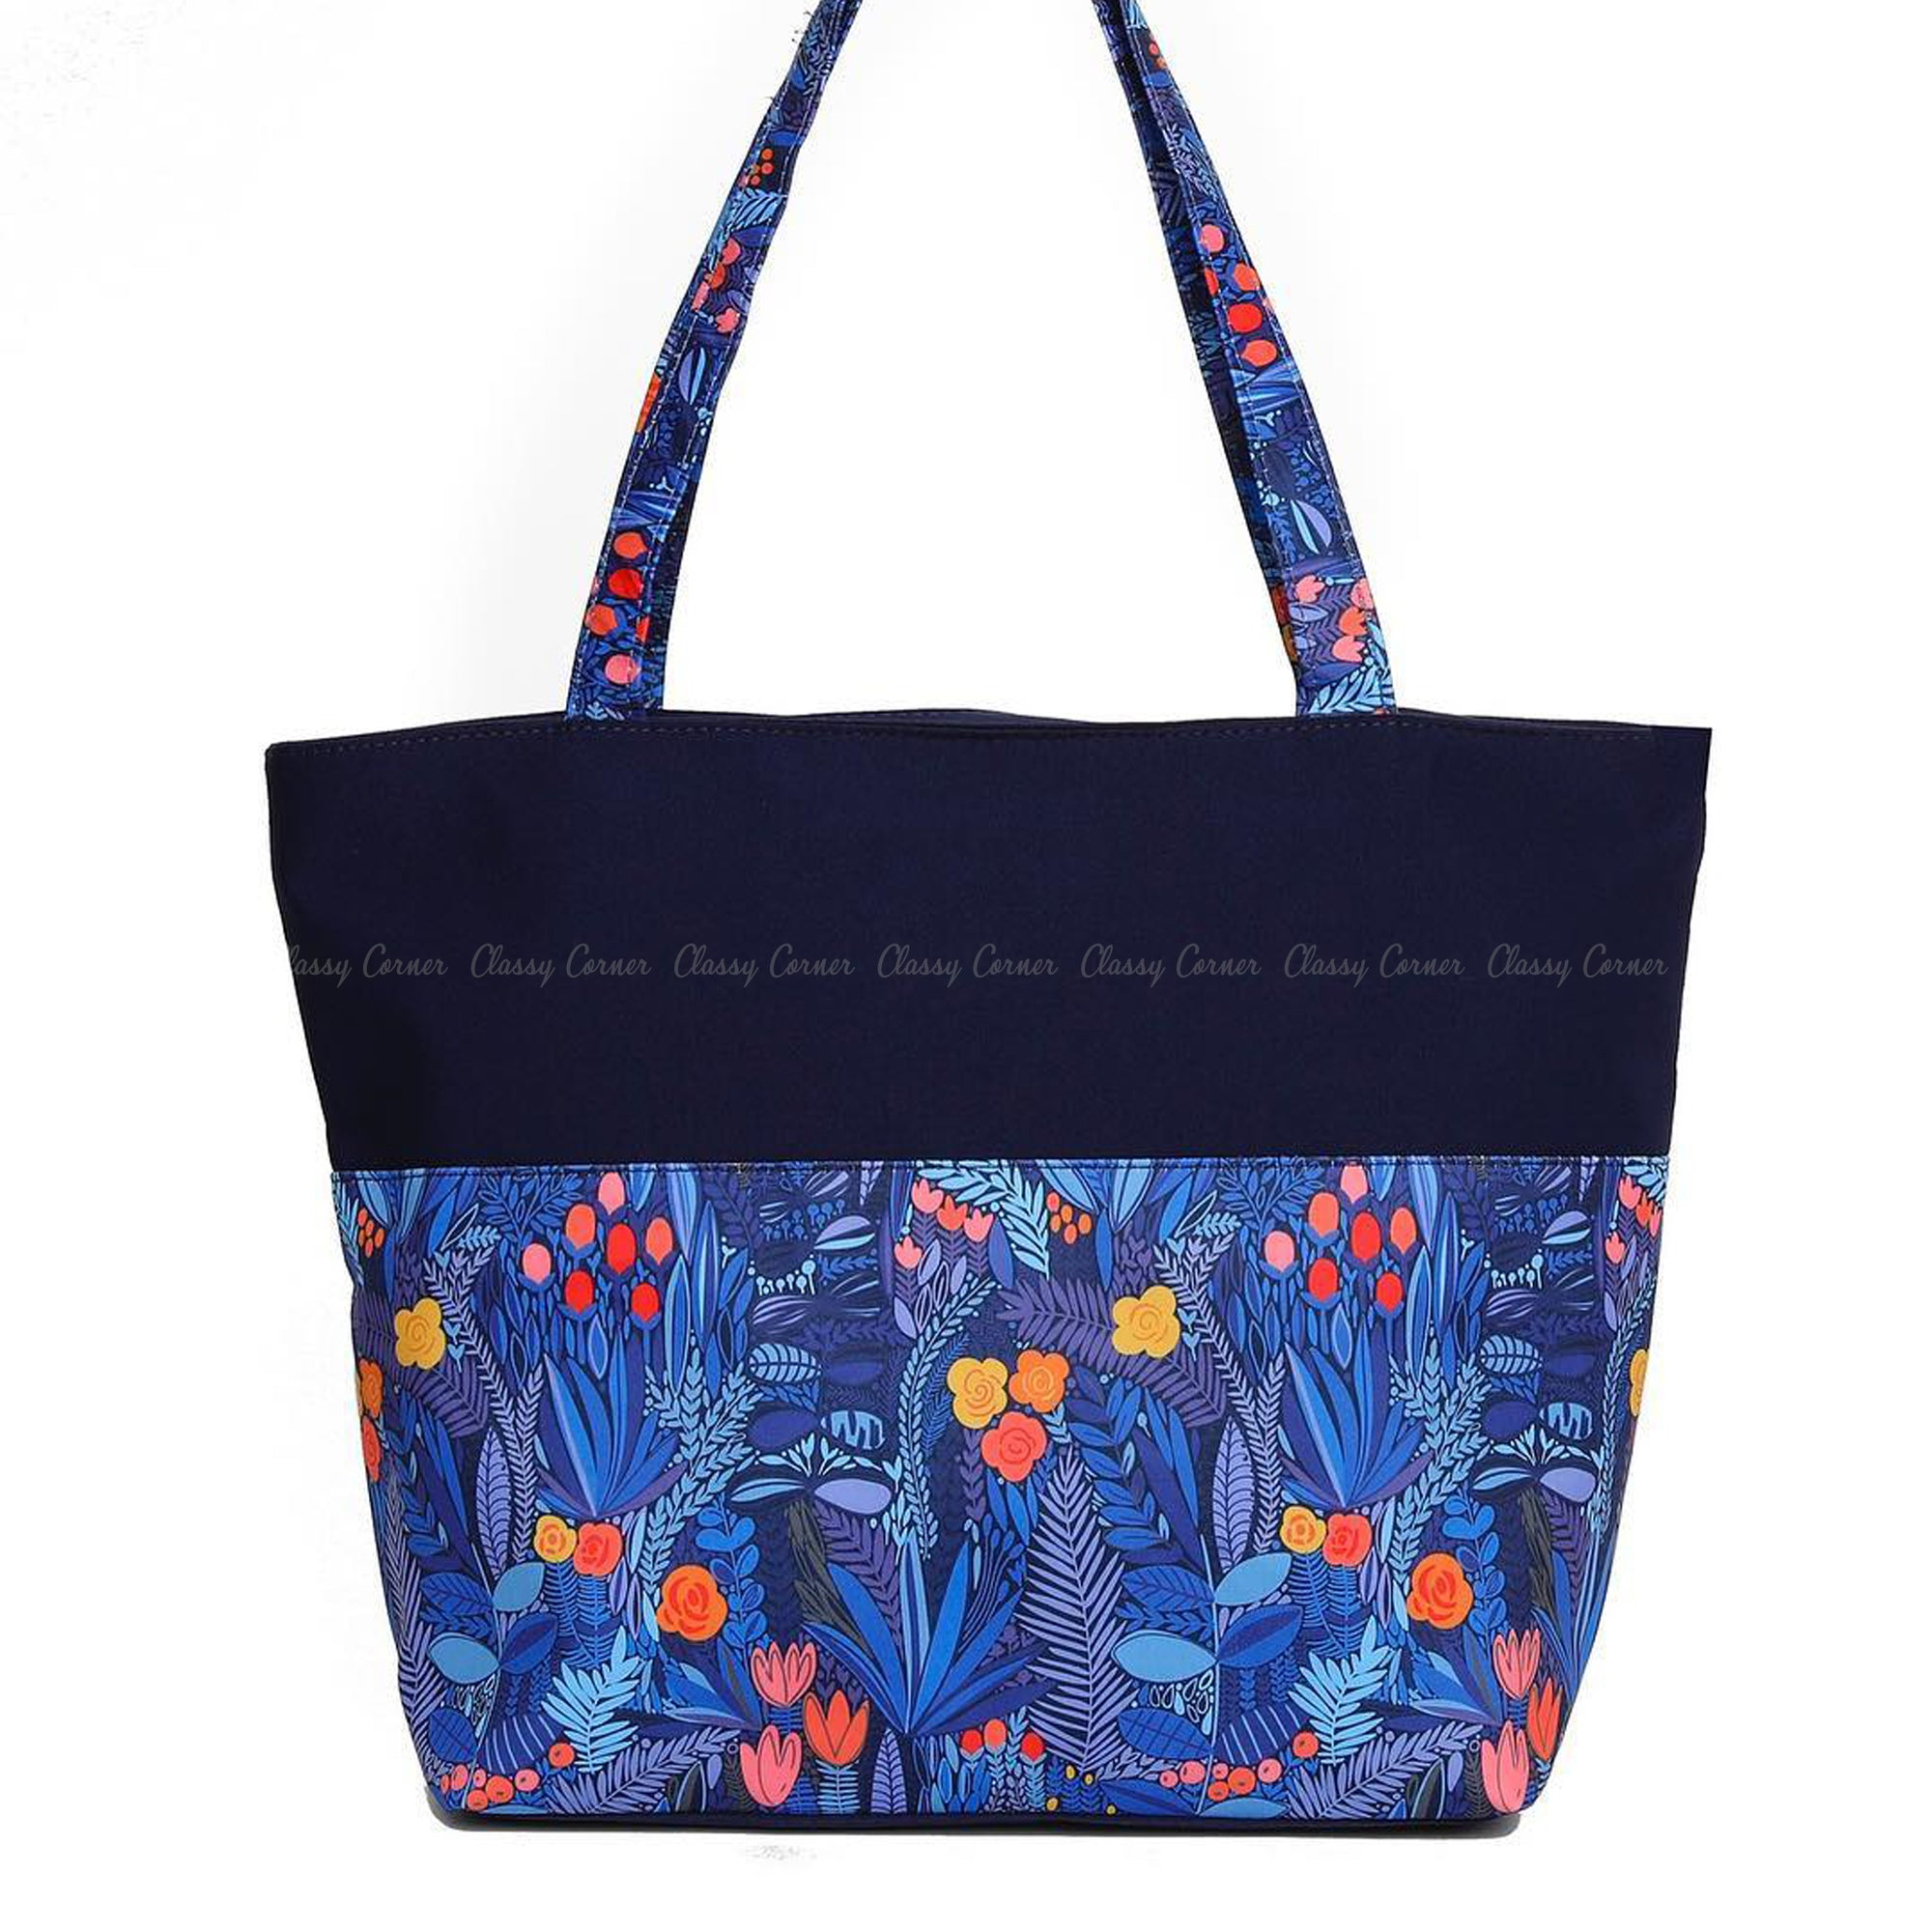 Multicolour Floral Leafy Print with Zipper Navy Blue Beach Tote Bag